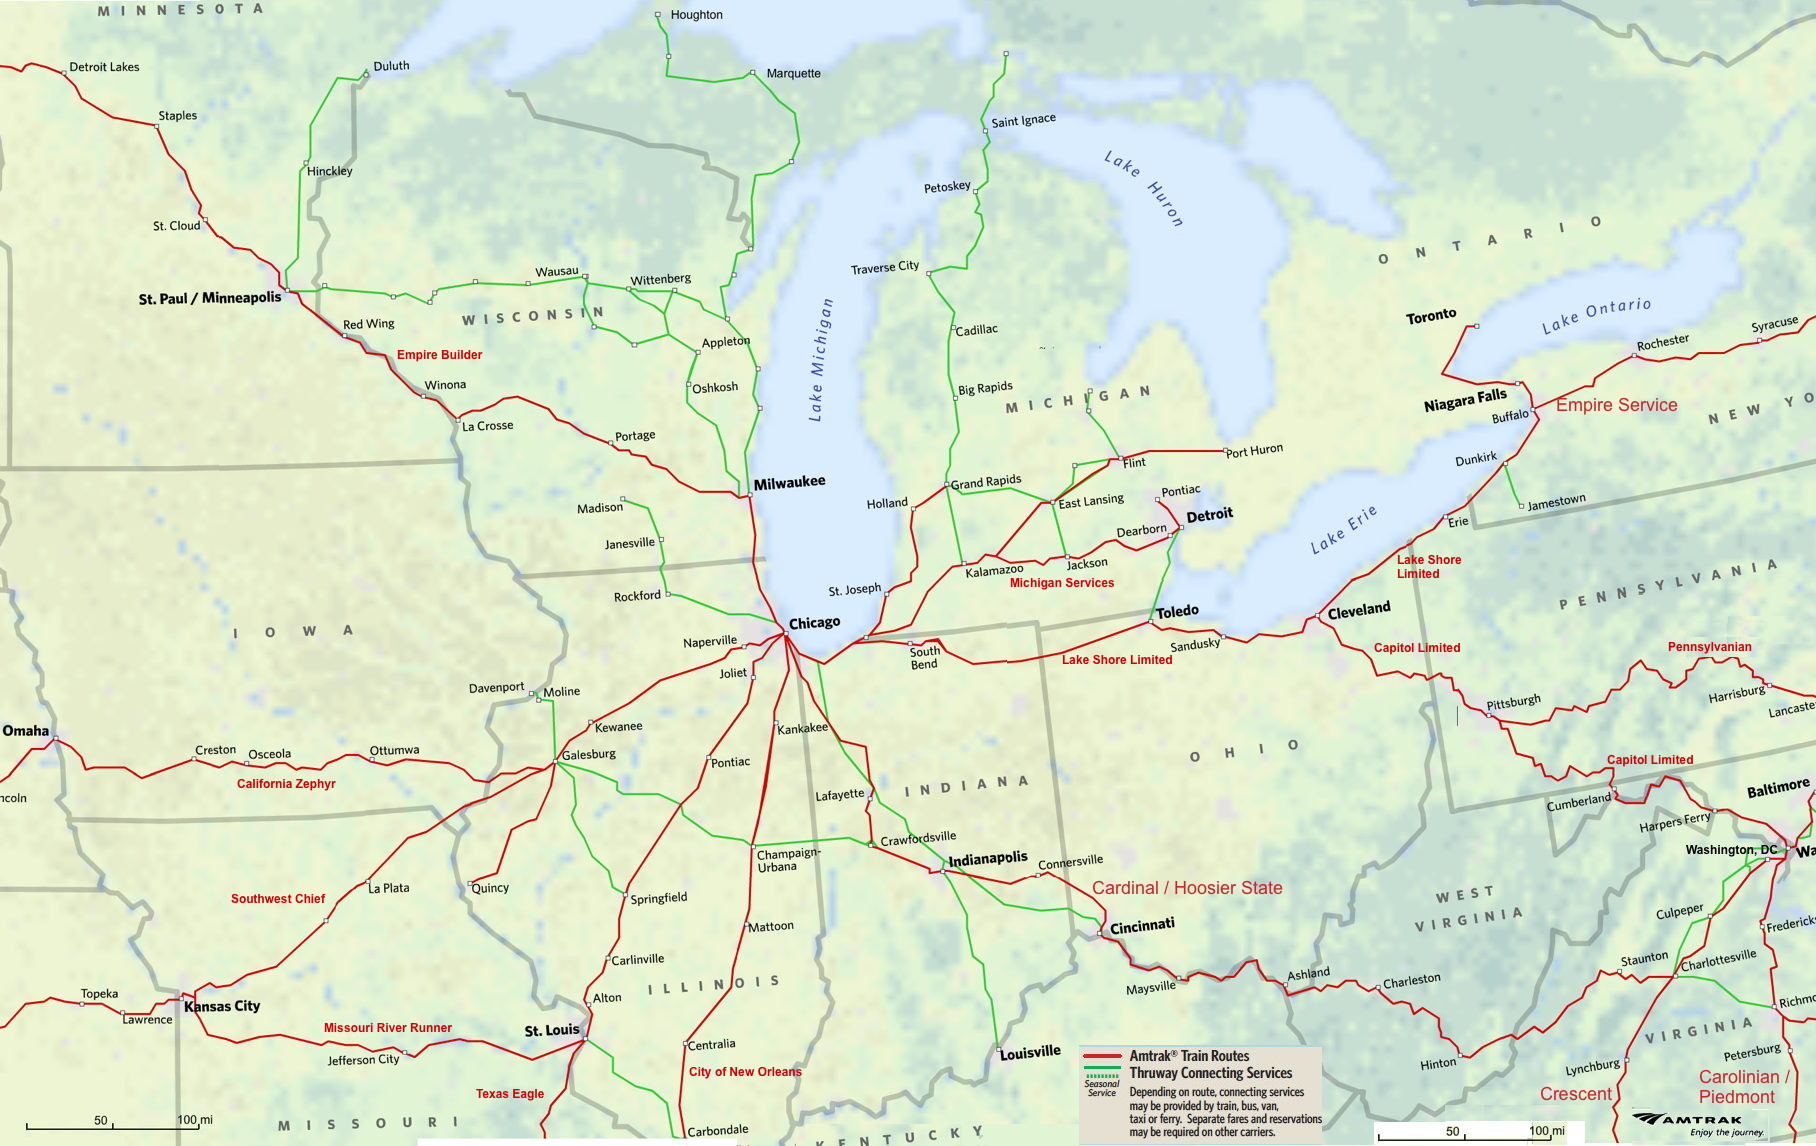 Midwest Amtrak Route Map